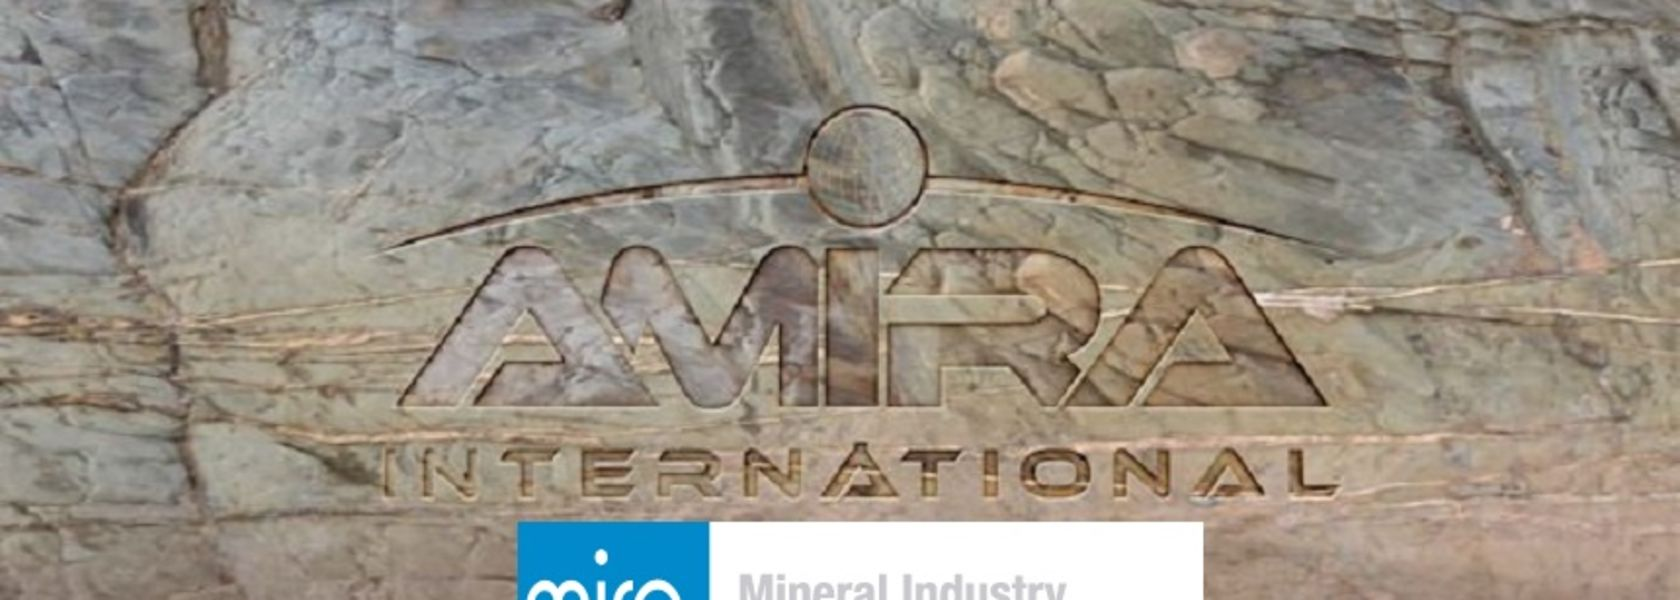 AMIRA, MIRO strengthen links - Mining Journal